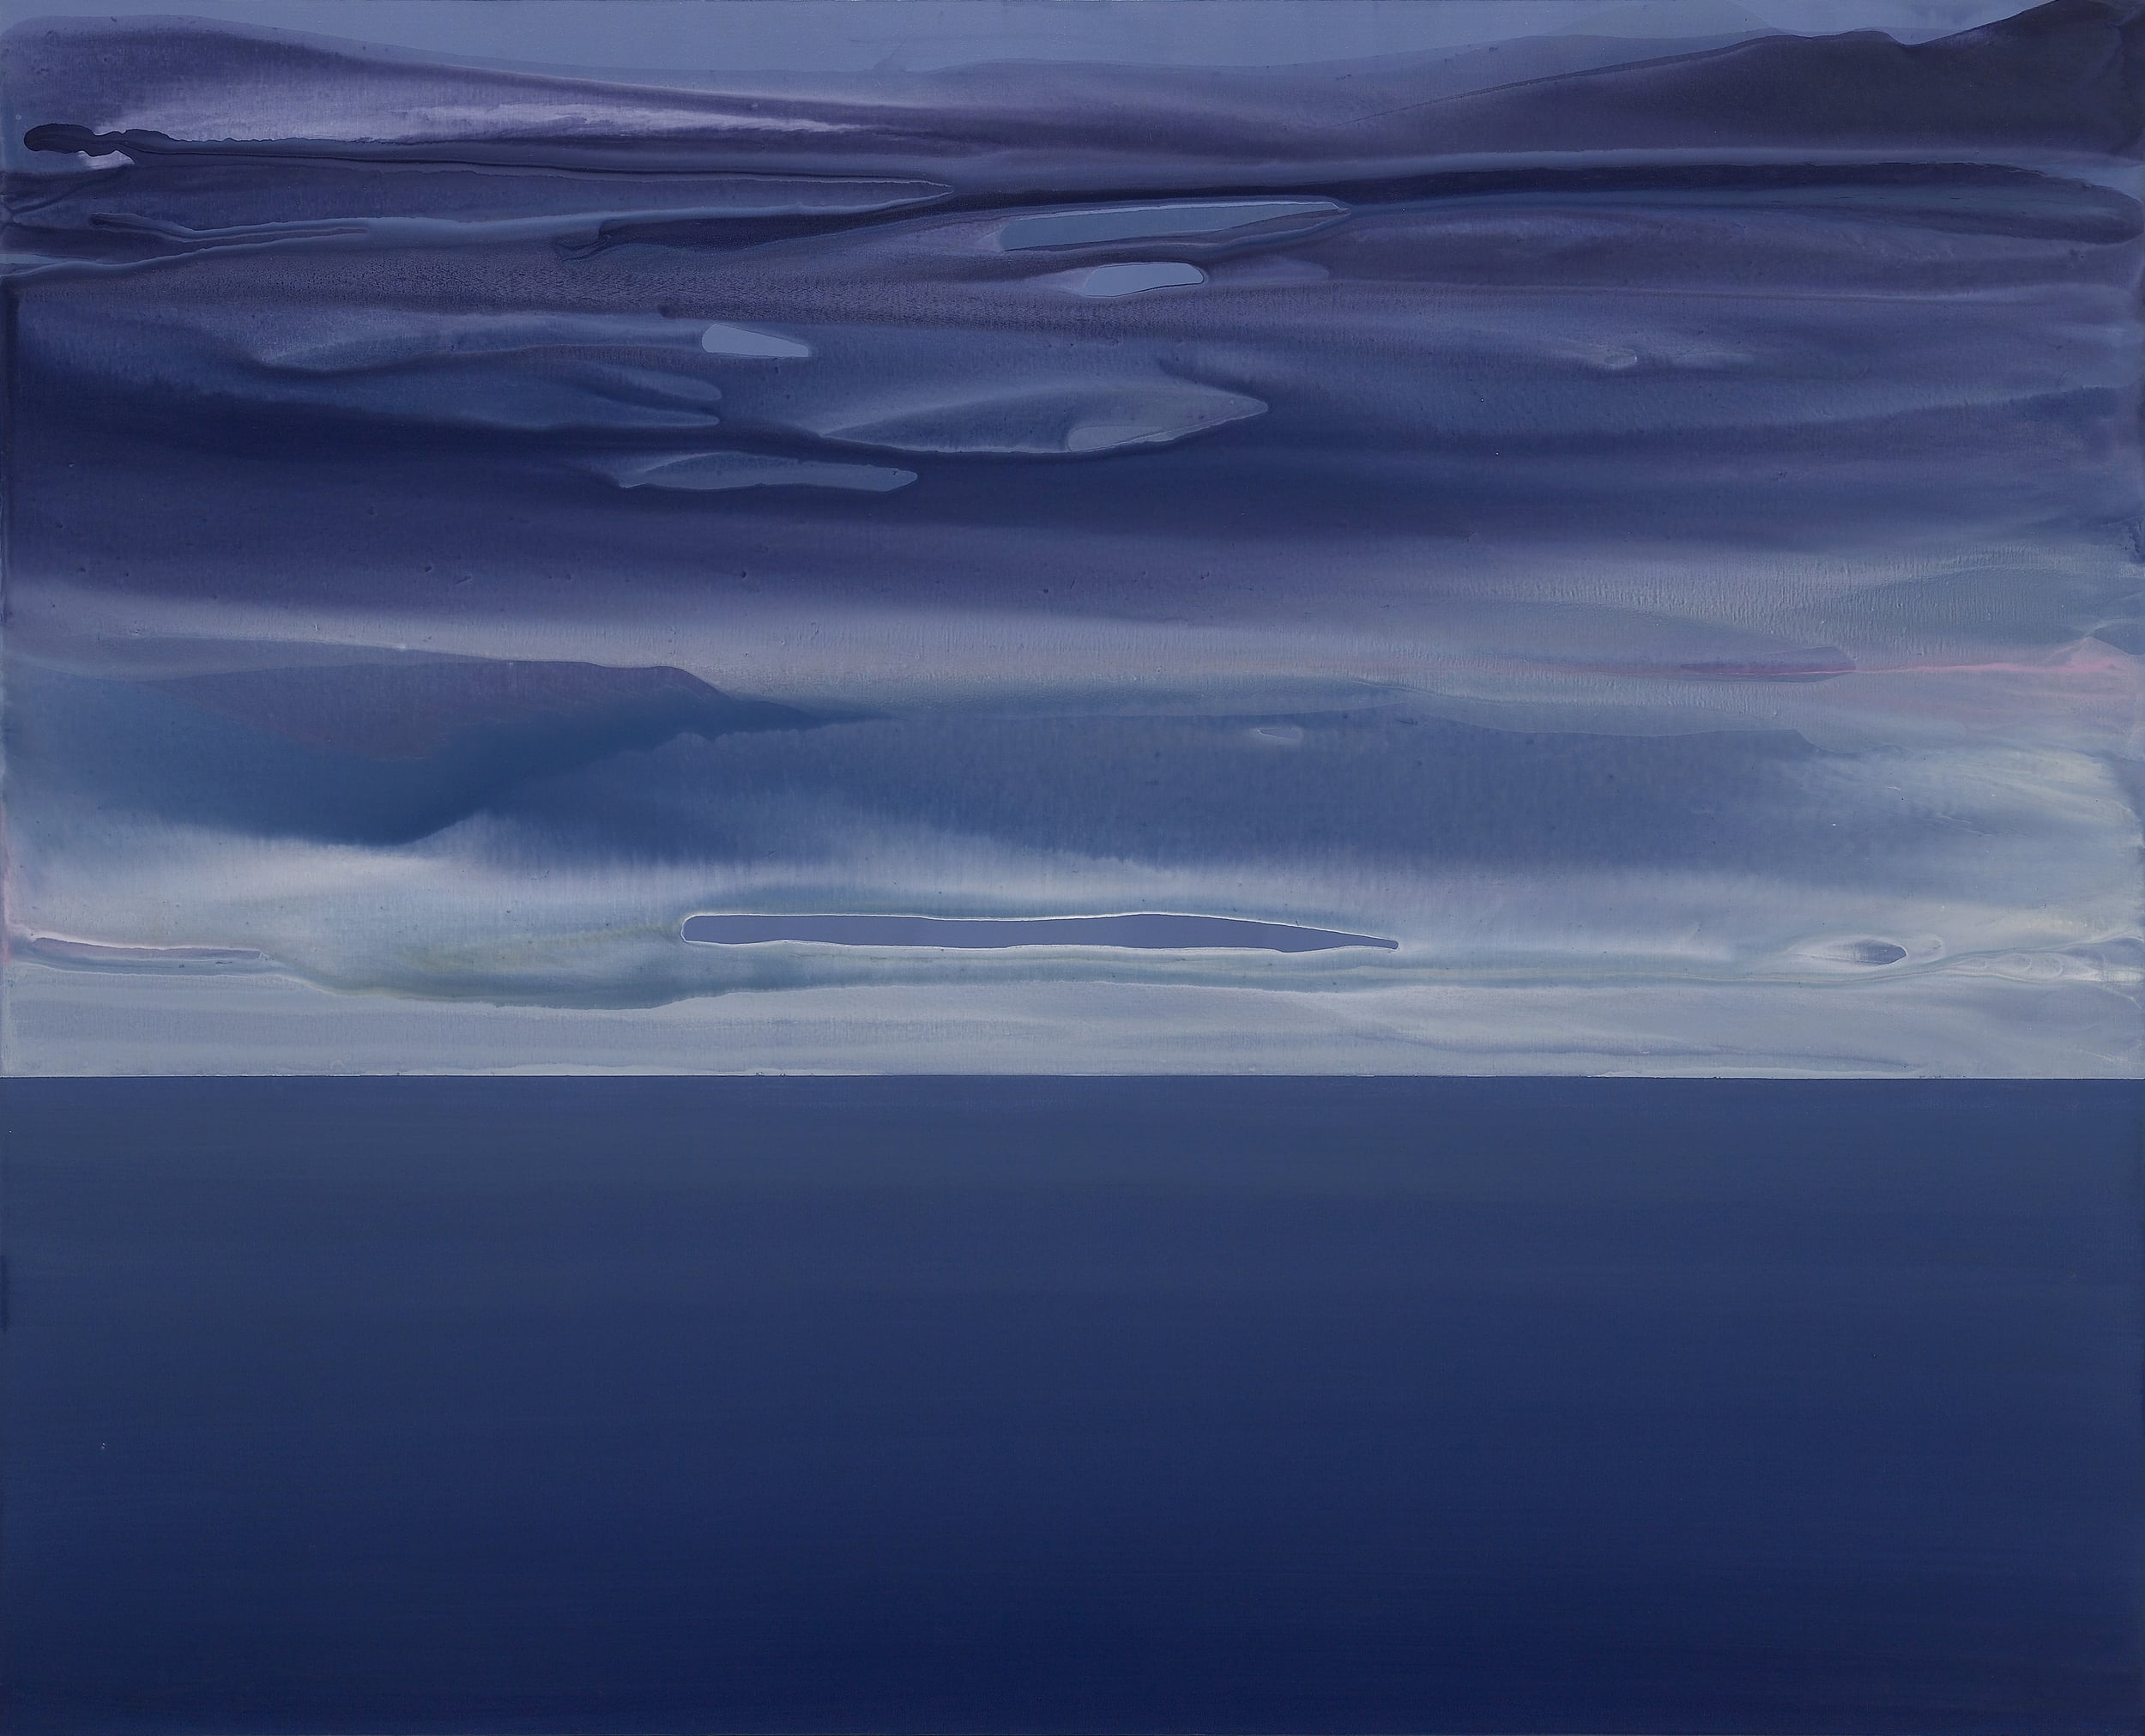 horizon_01  acrylic on canvas  162 cm X 130 cm  2013